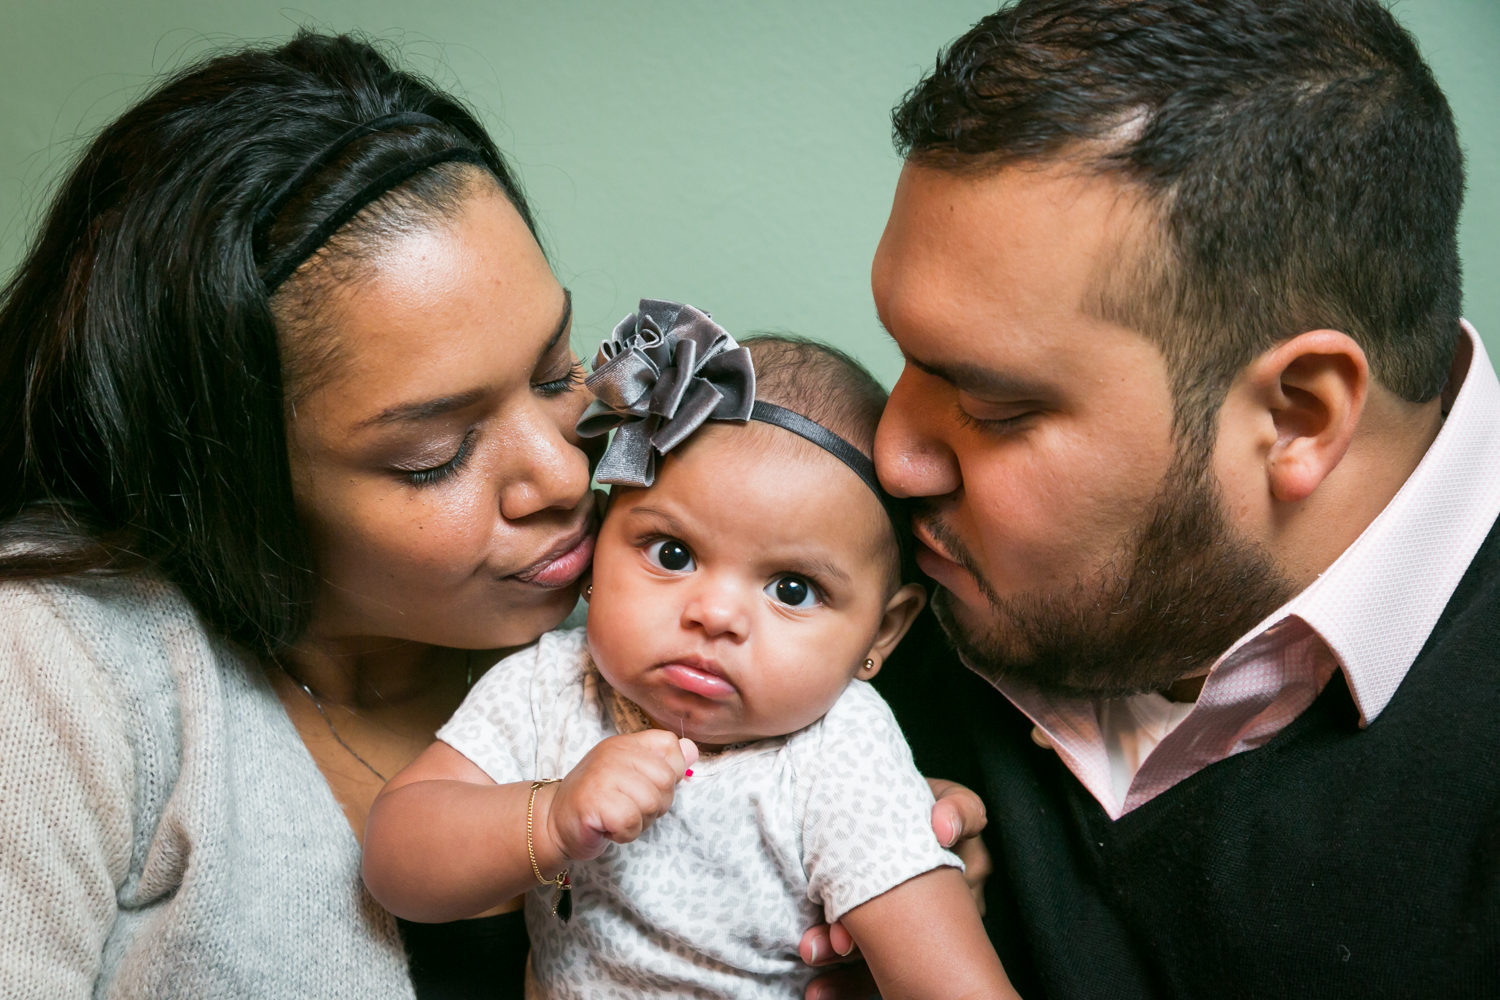 Prospect Park family portrait of parents kissing angry baby on both cheeks